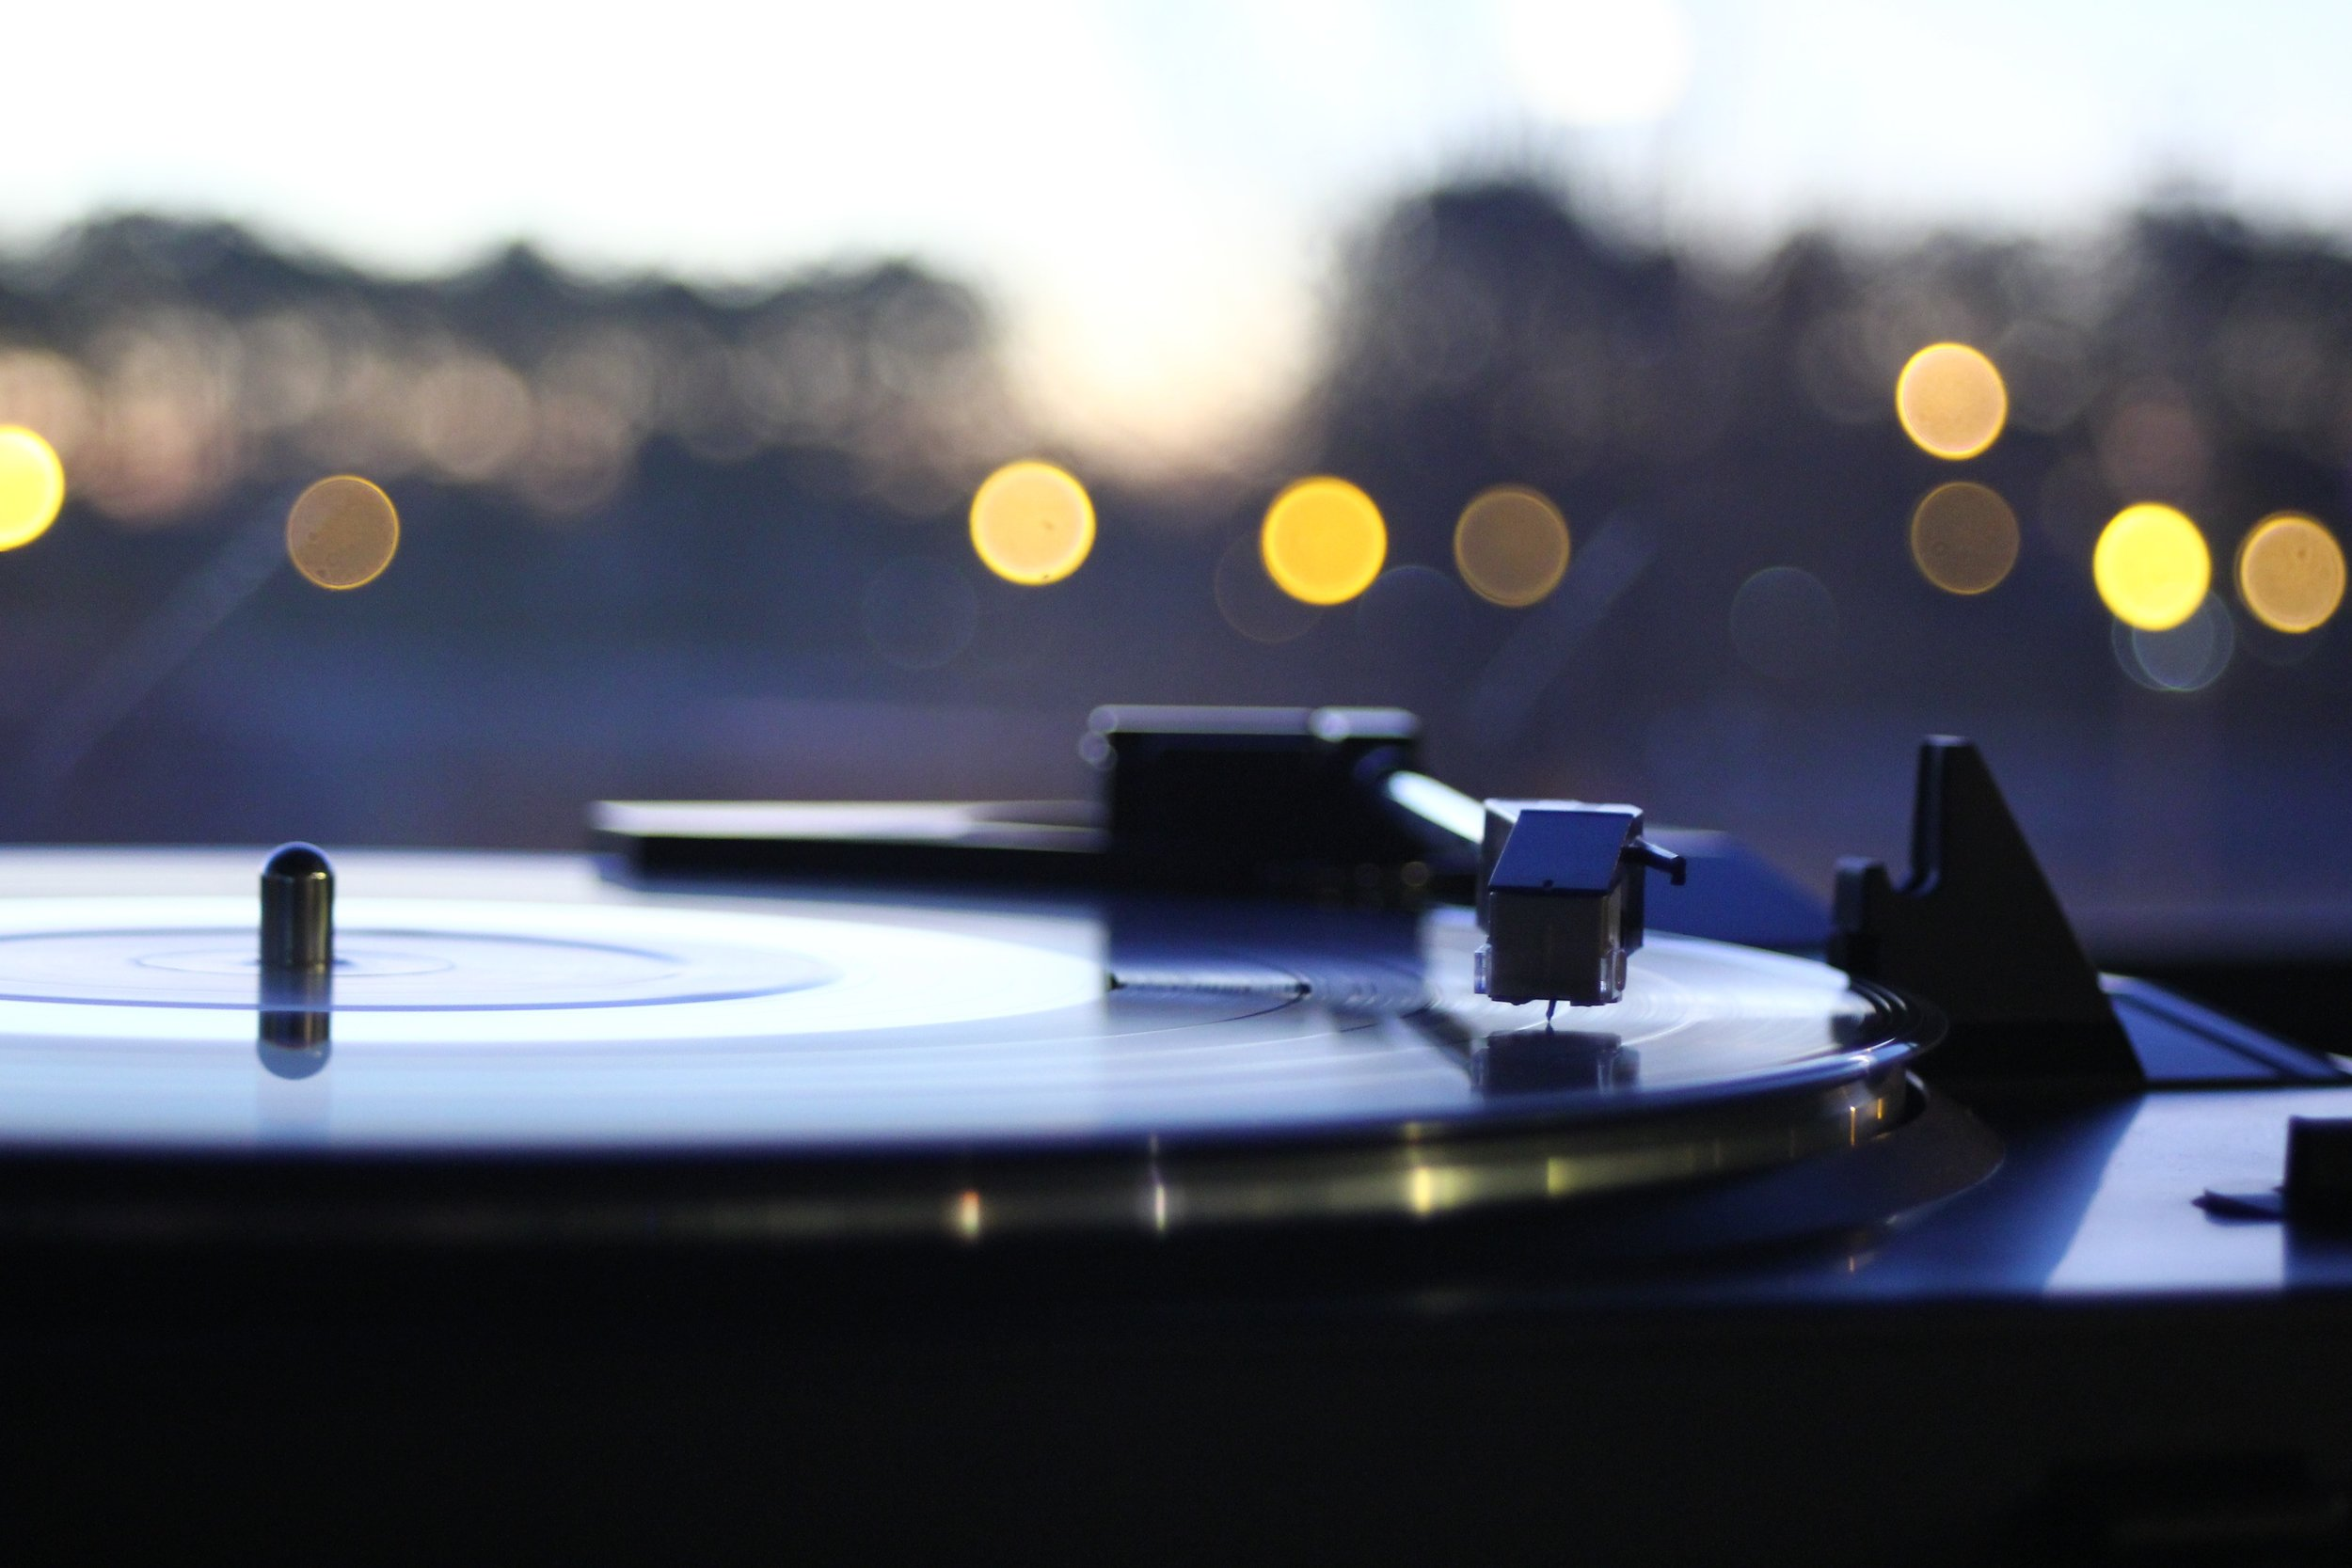 blurred-background-bokeh-close-up- Turn tables .jpg